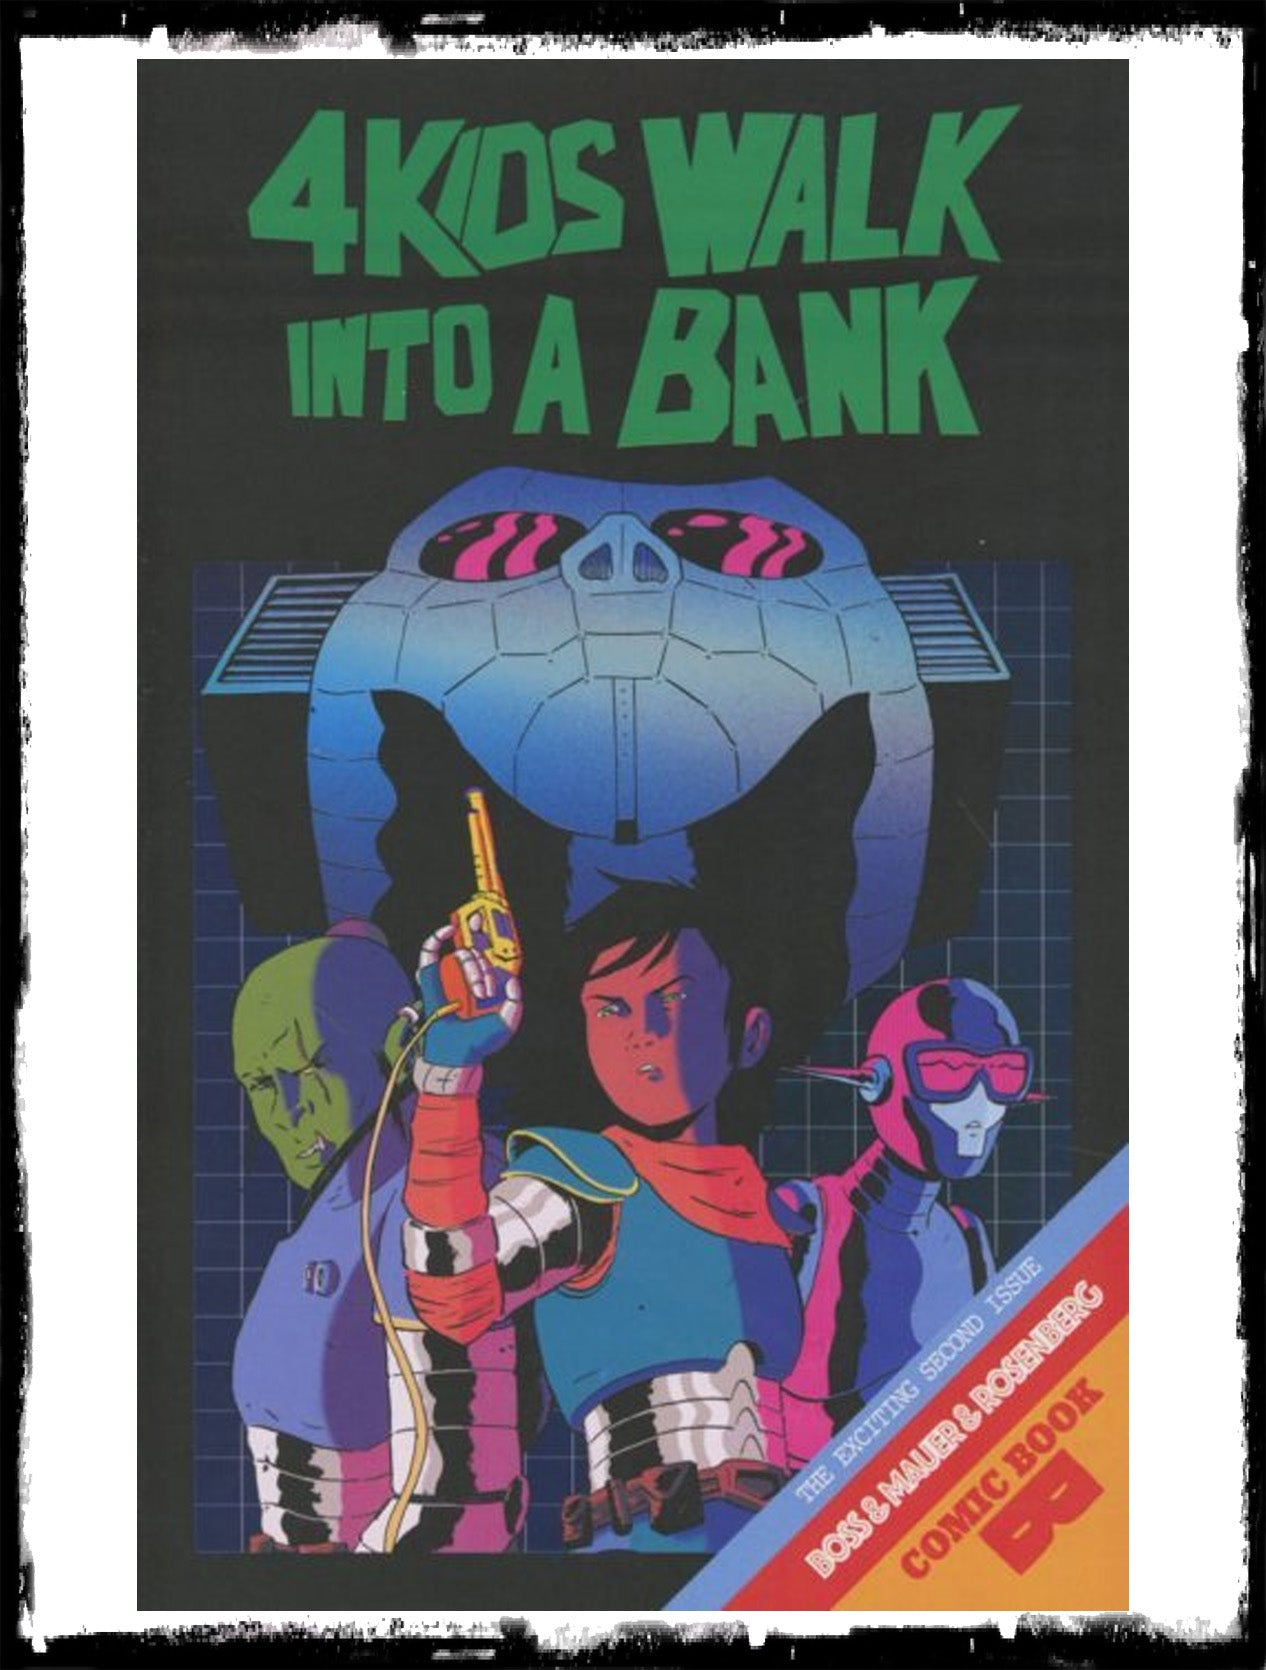 4 KIDS WALK INTO A BANK - #2 (2016 - NM)